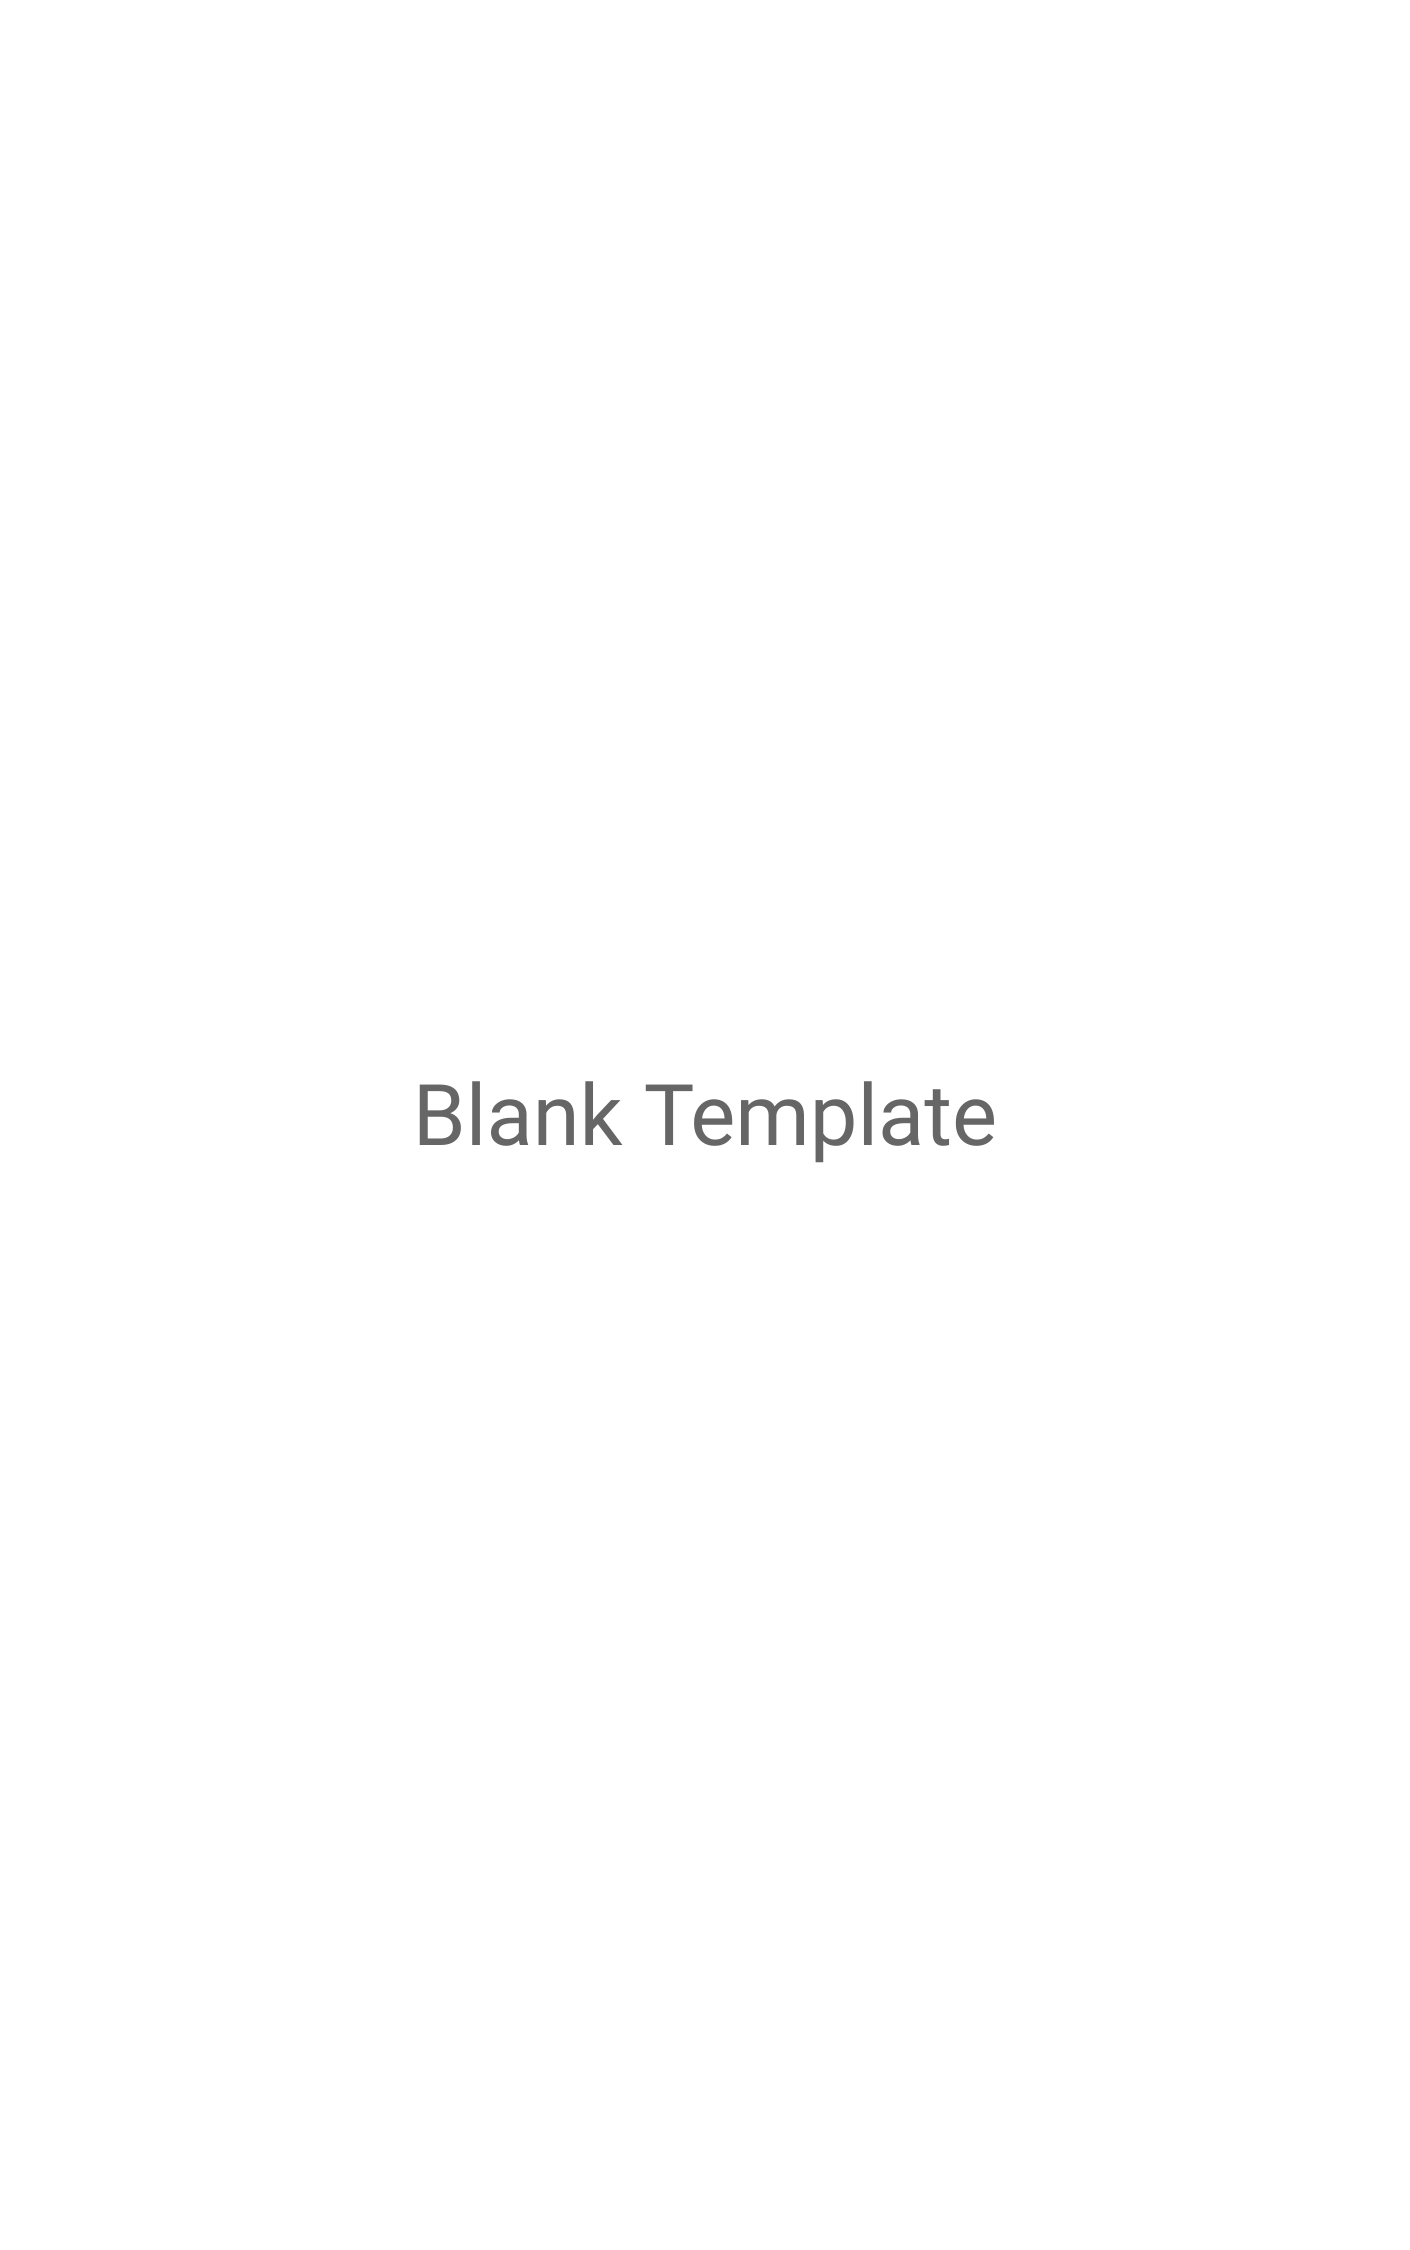 Blank Template Book Covers Template